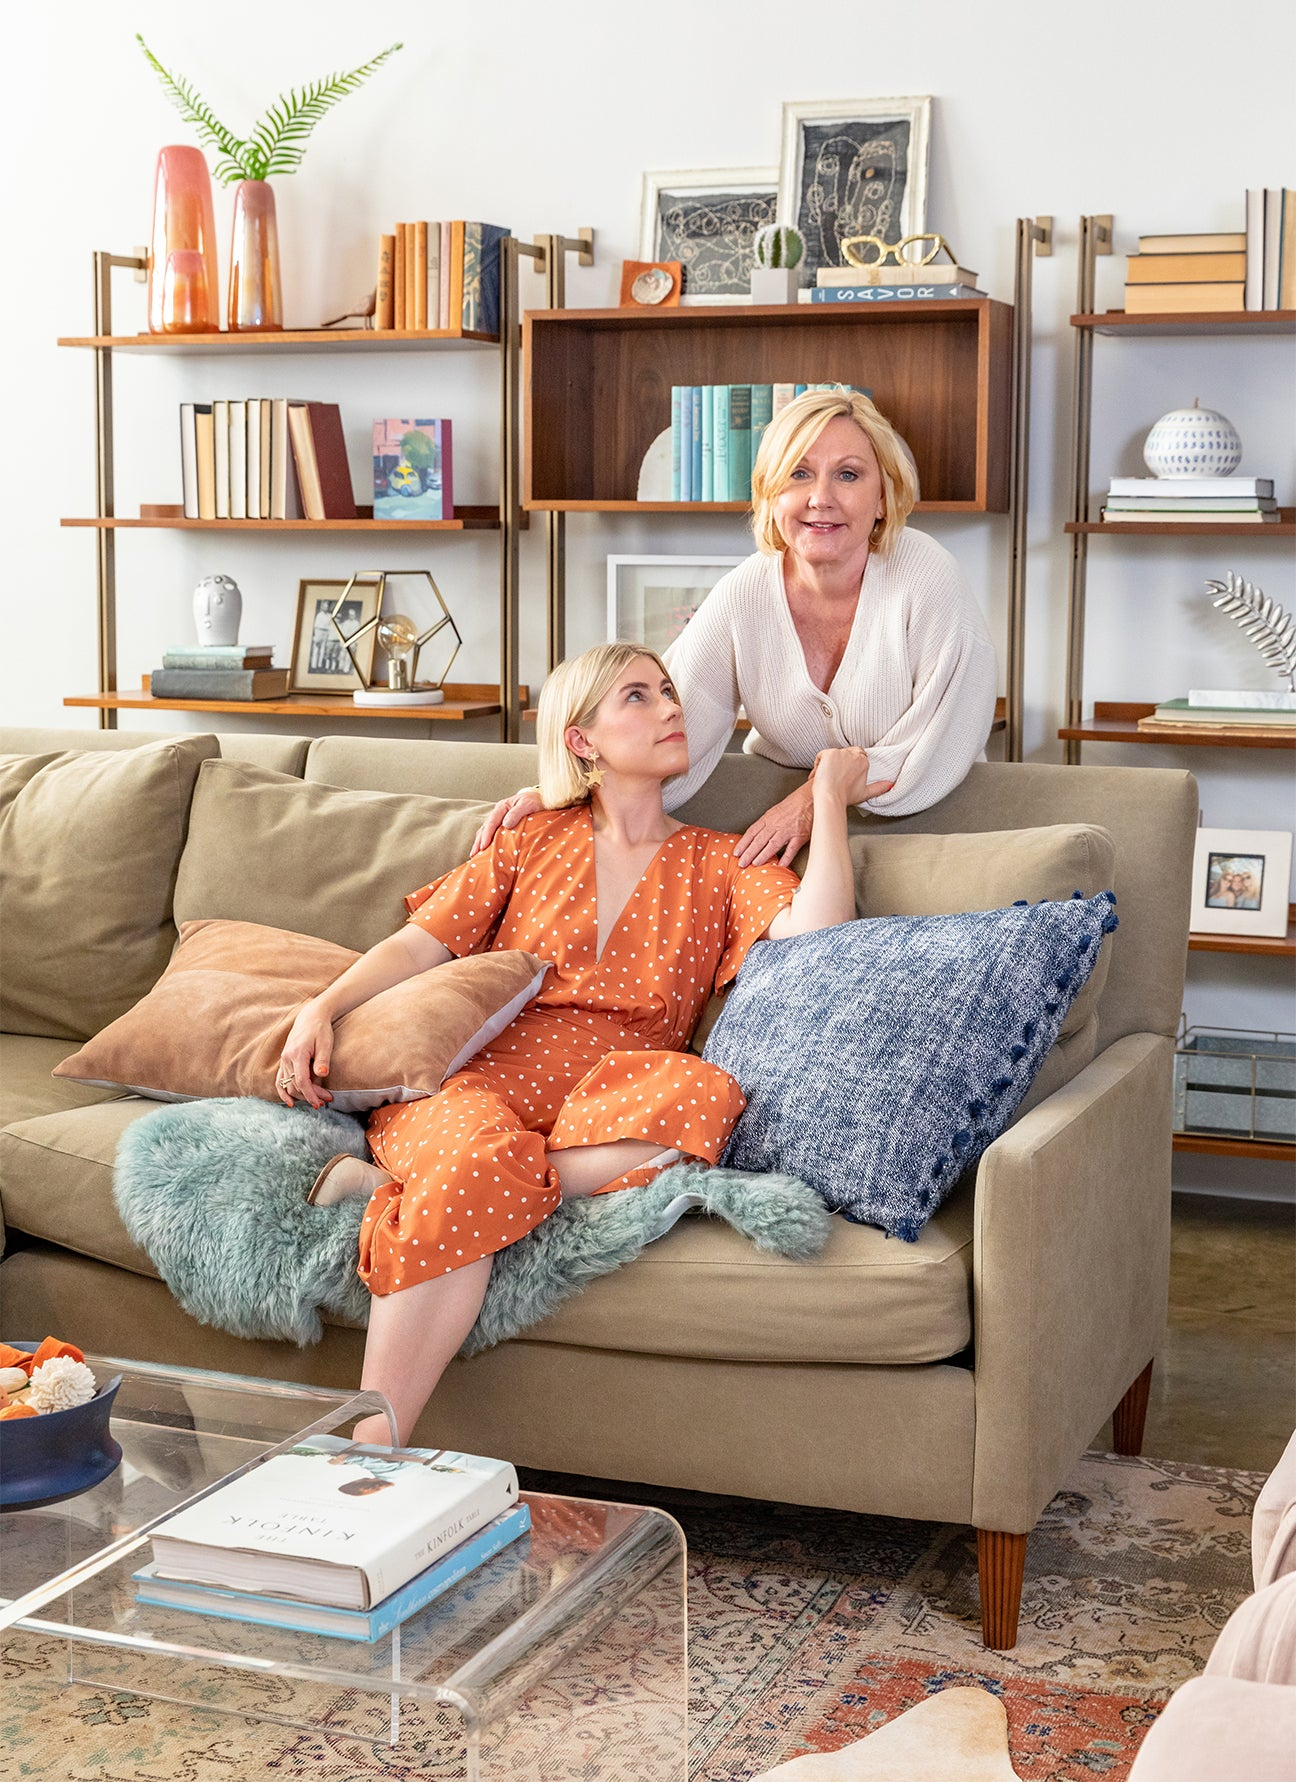 abby pendergrast and her mom sitting on a sofa together